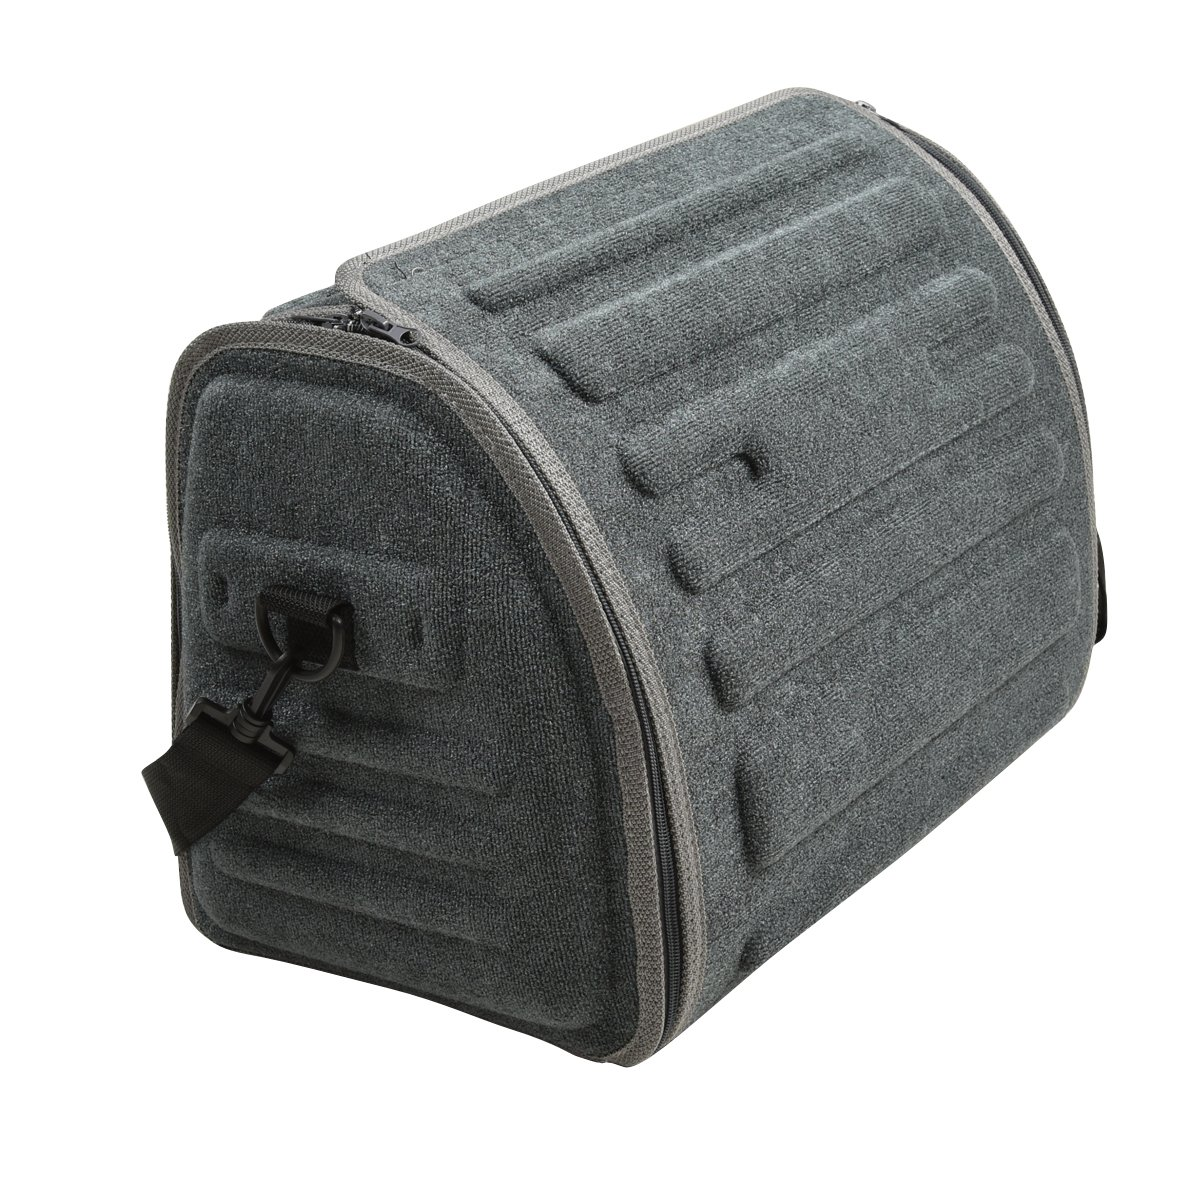 NEW ARRIVAL- CAR PASS Universal Waterproof Durable Collapsible Cargo Storage , Foldable Car Trunk Organizers, Great for Car, SUV, Truck, Jeep, Minivan, Home (Dark Gray) LJ ZT-0053